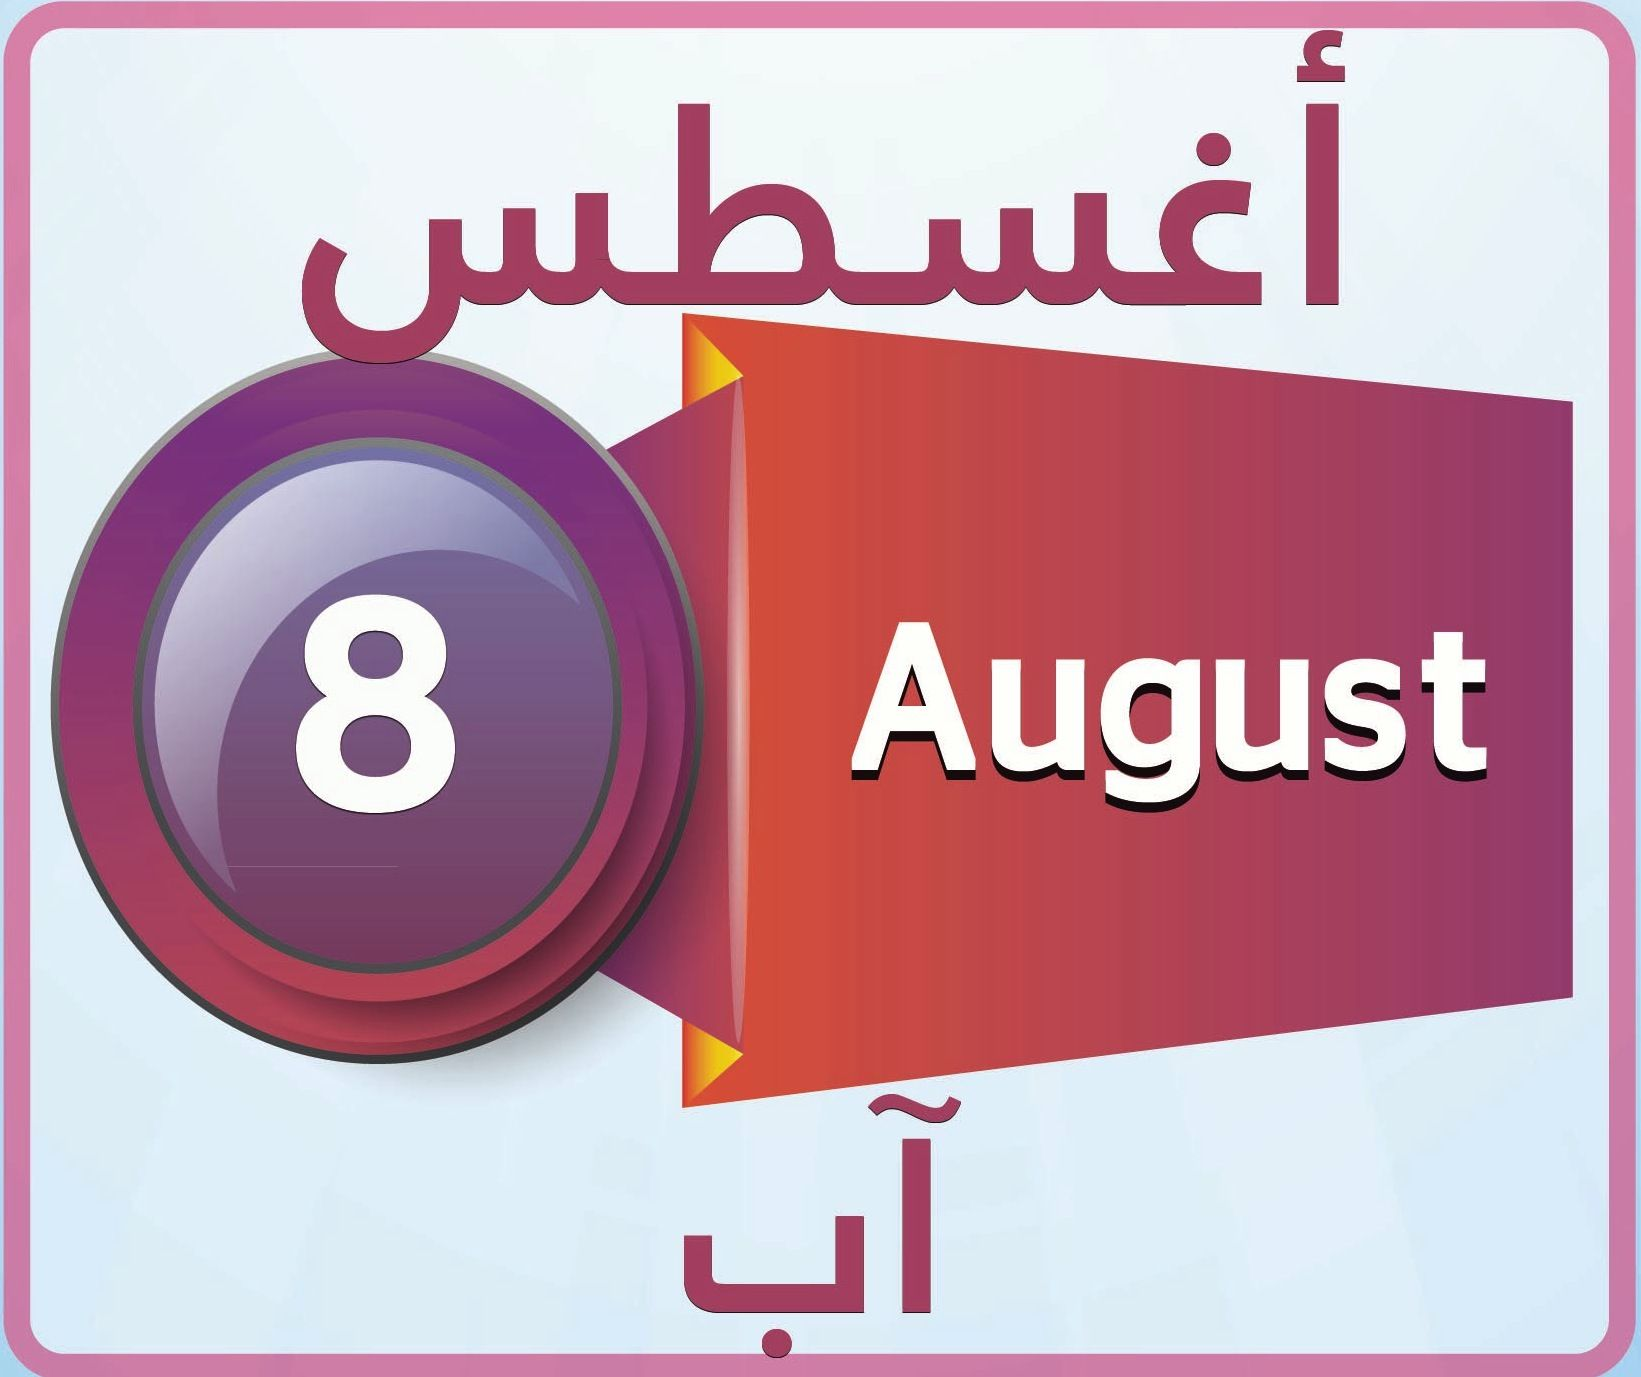 August Is The